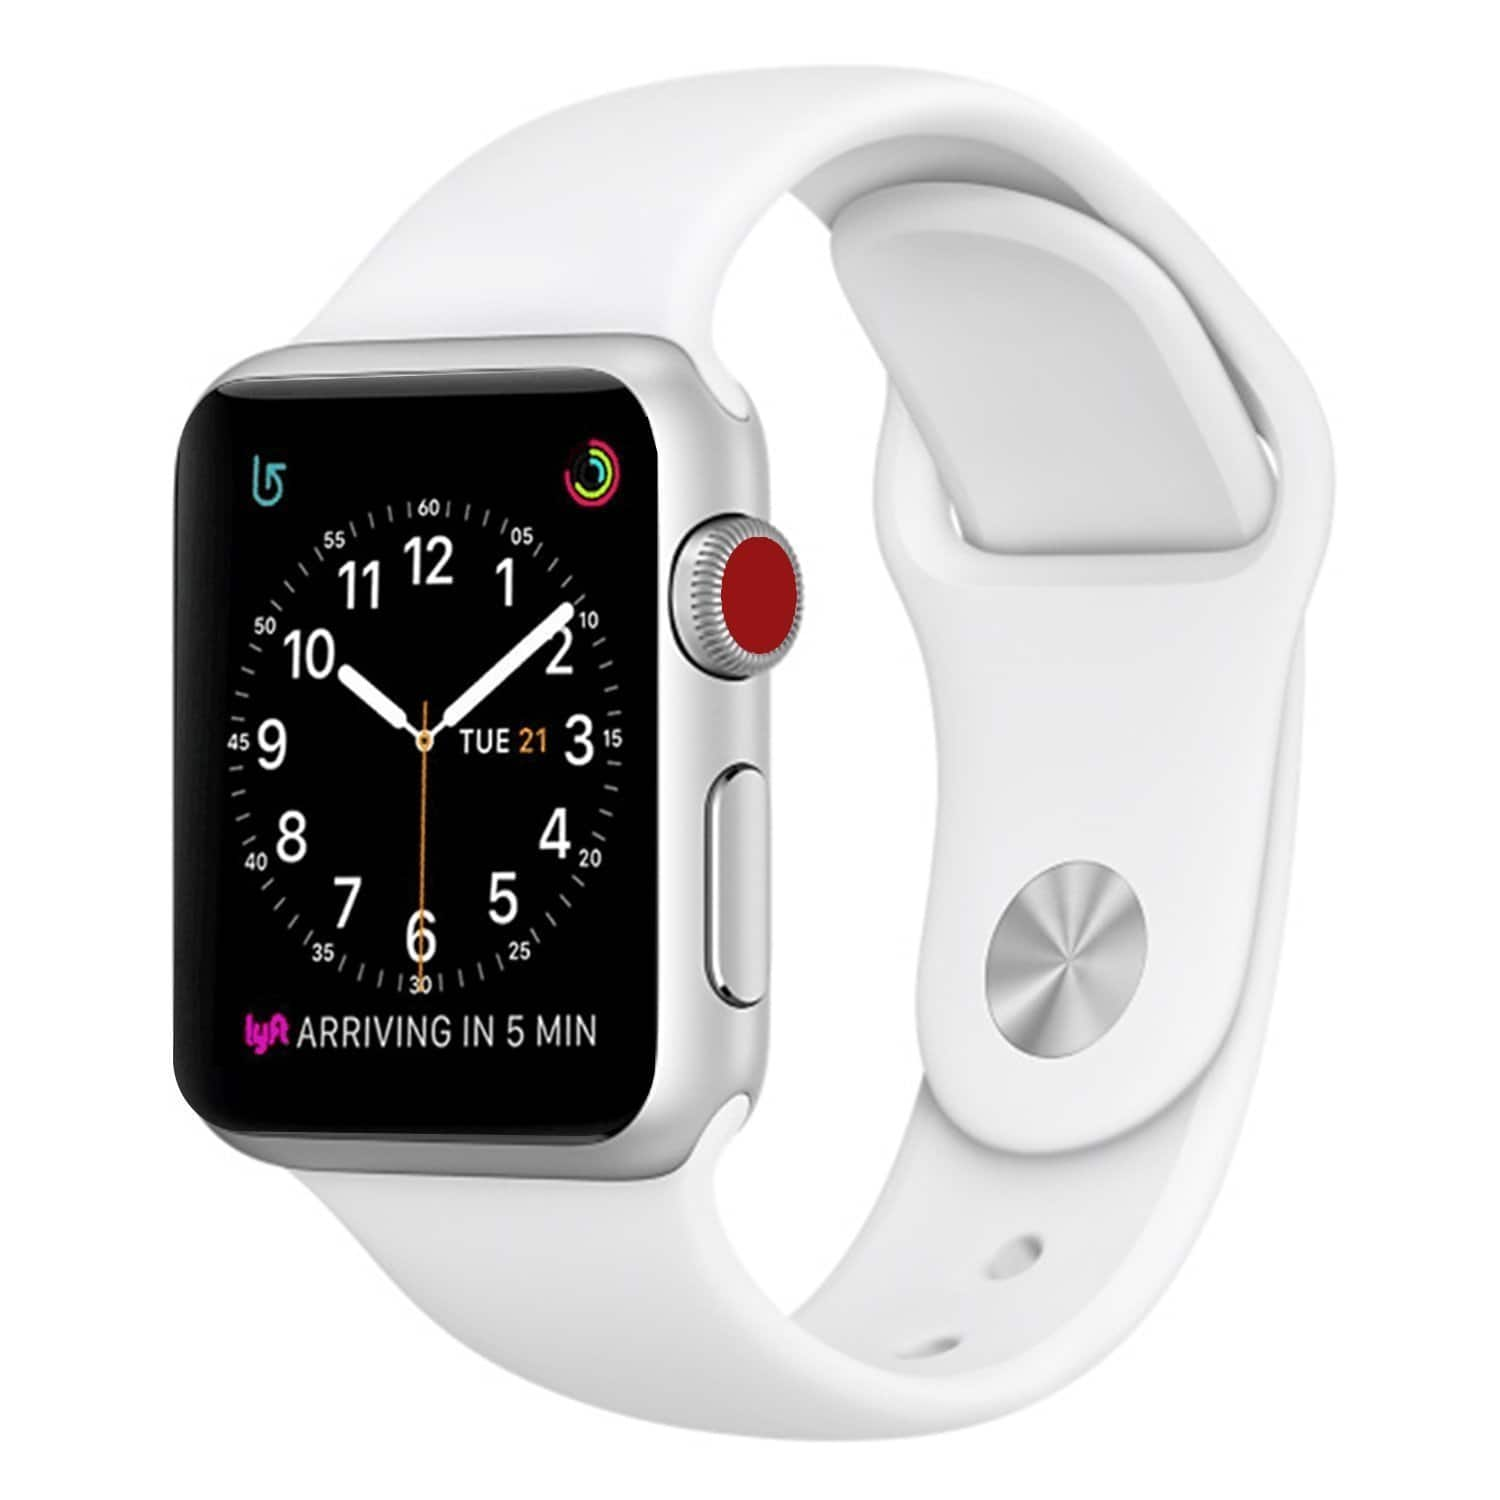 Apple Watch bands 38mm to 42mm (Various colors) from $4.98 + F/S with prime